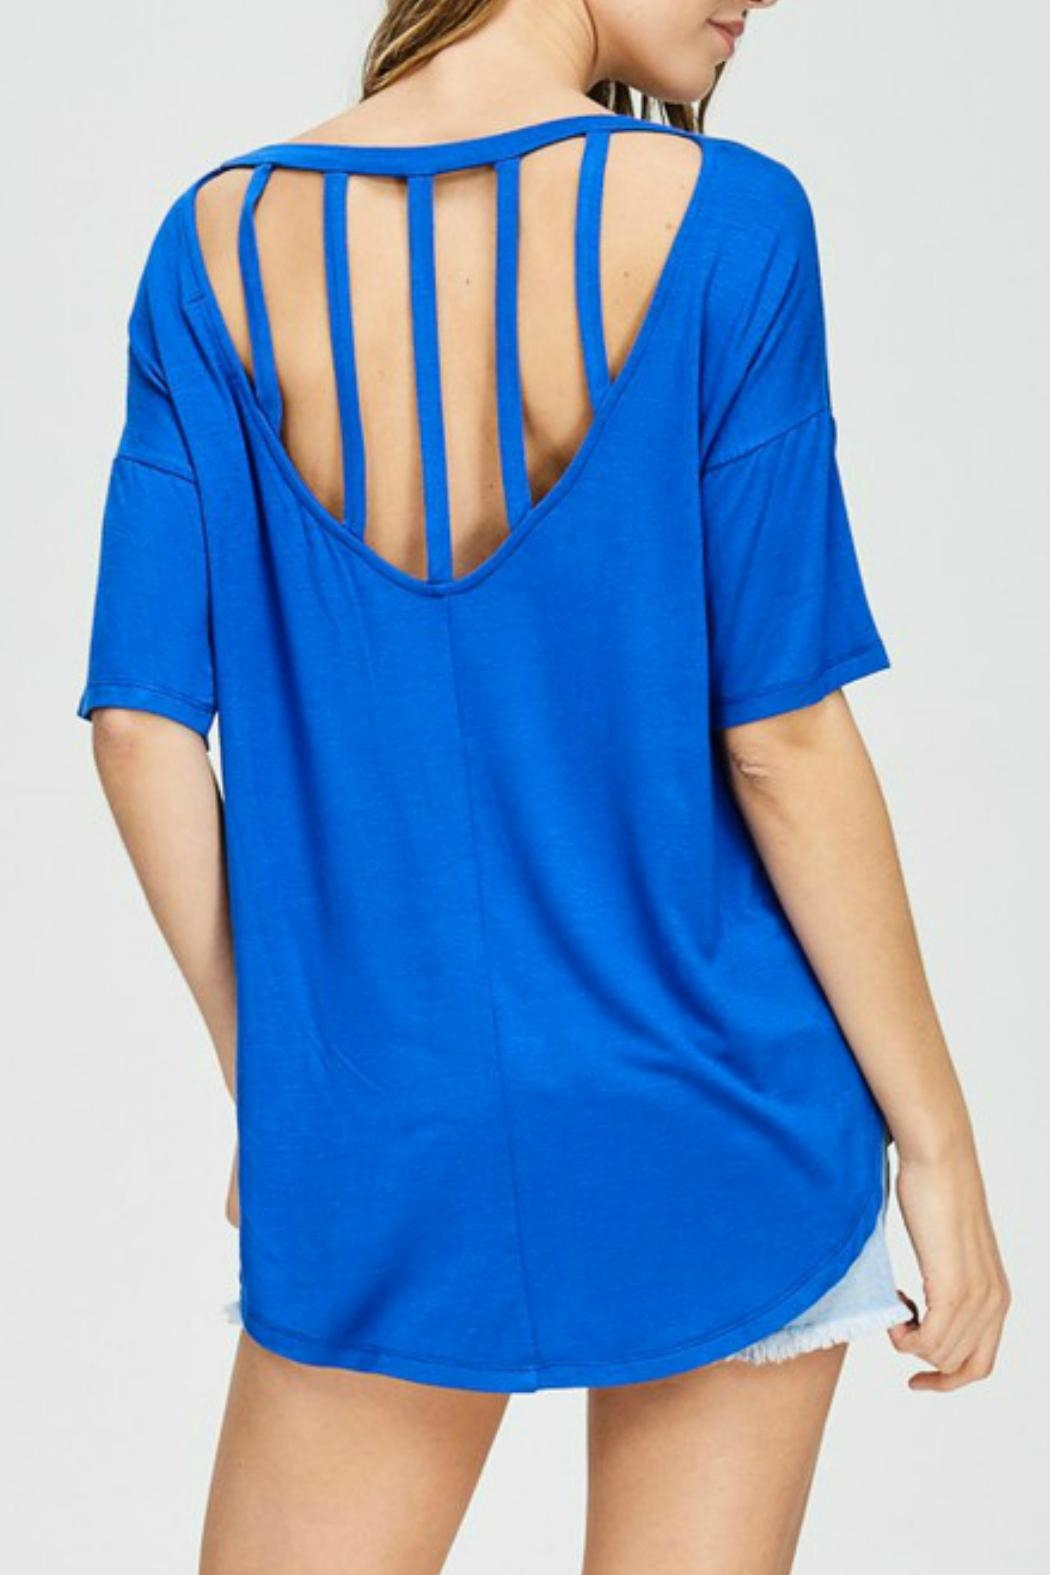 Cherish Cobalt Blue Top - Front Cropped Image